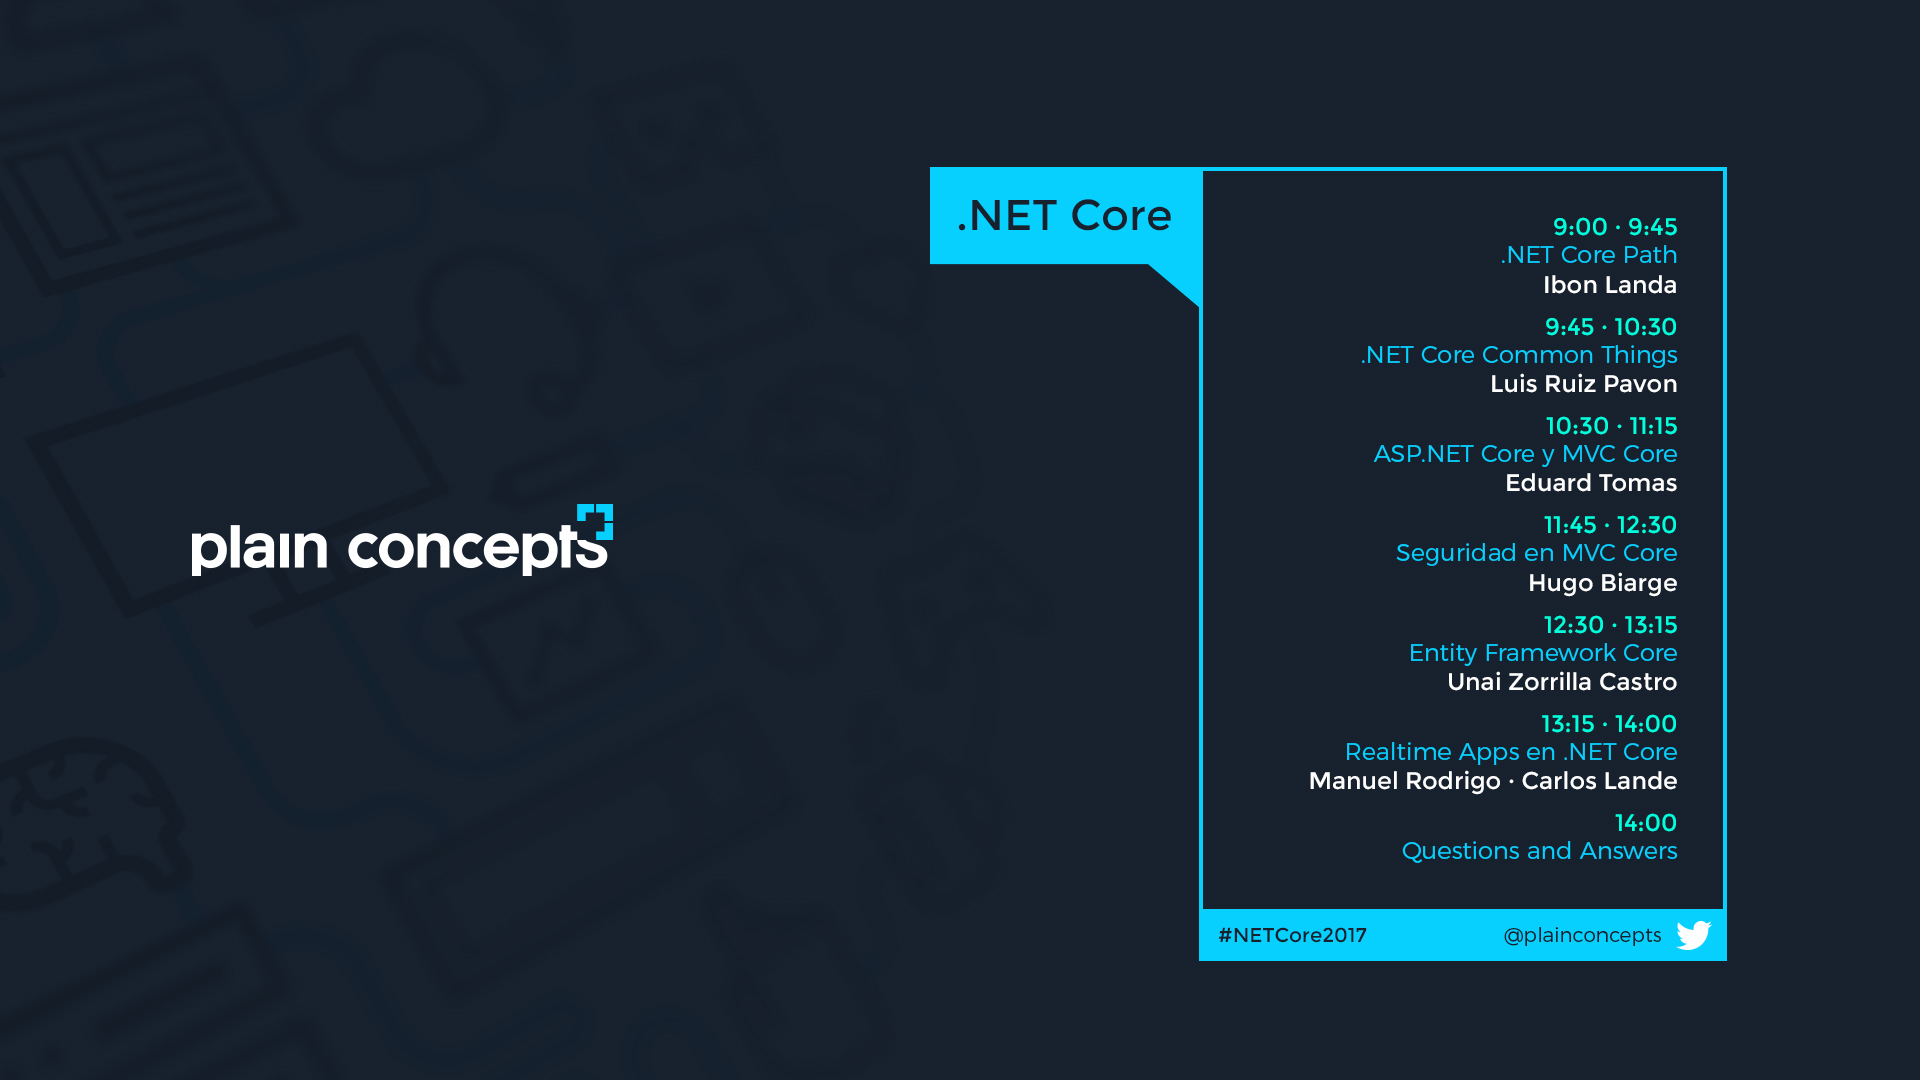 Agenda evento .net core 2017